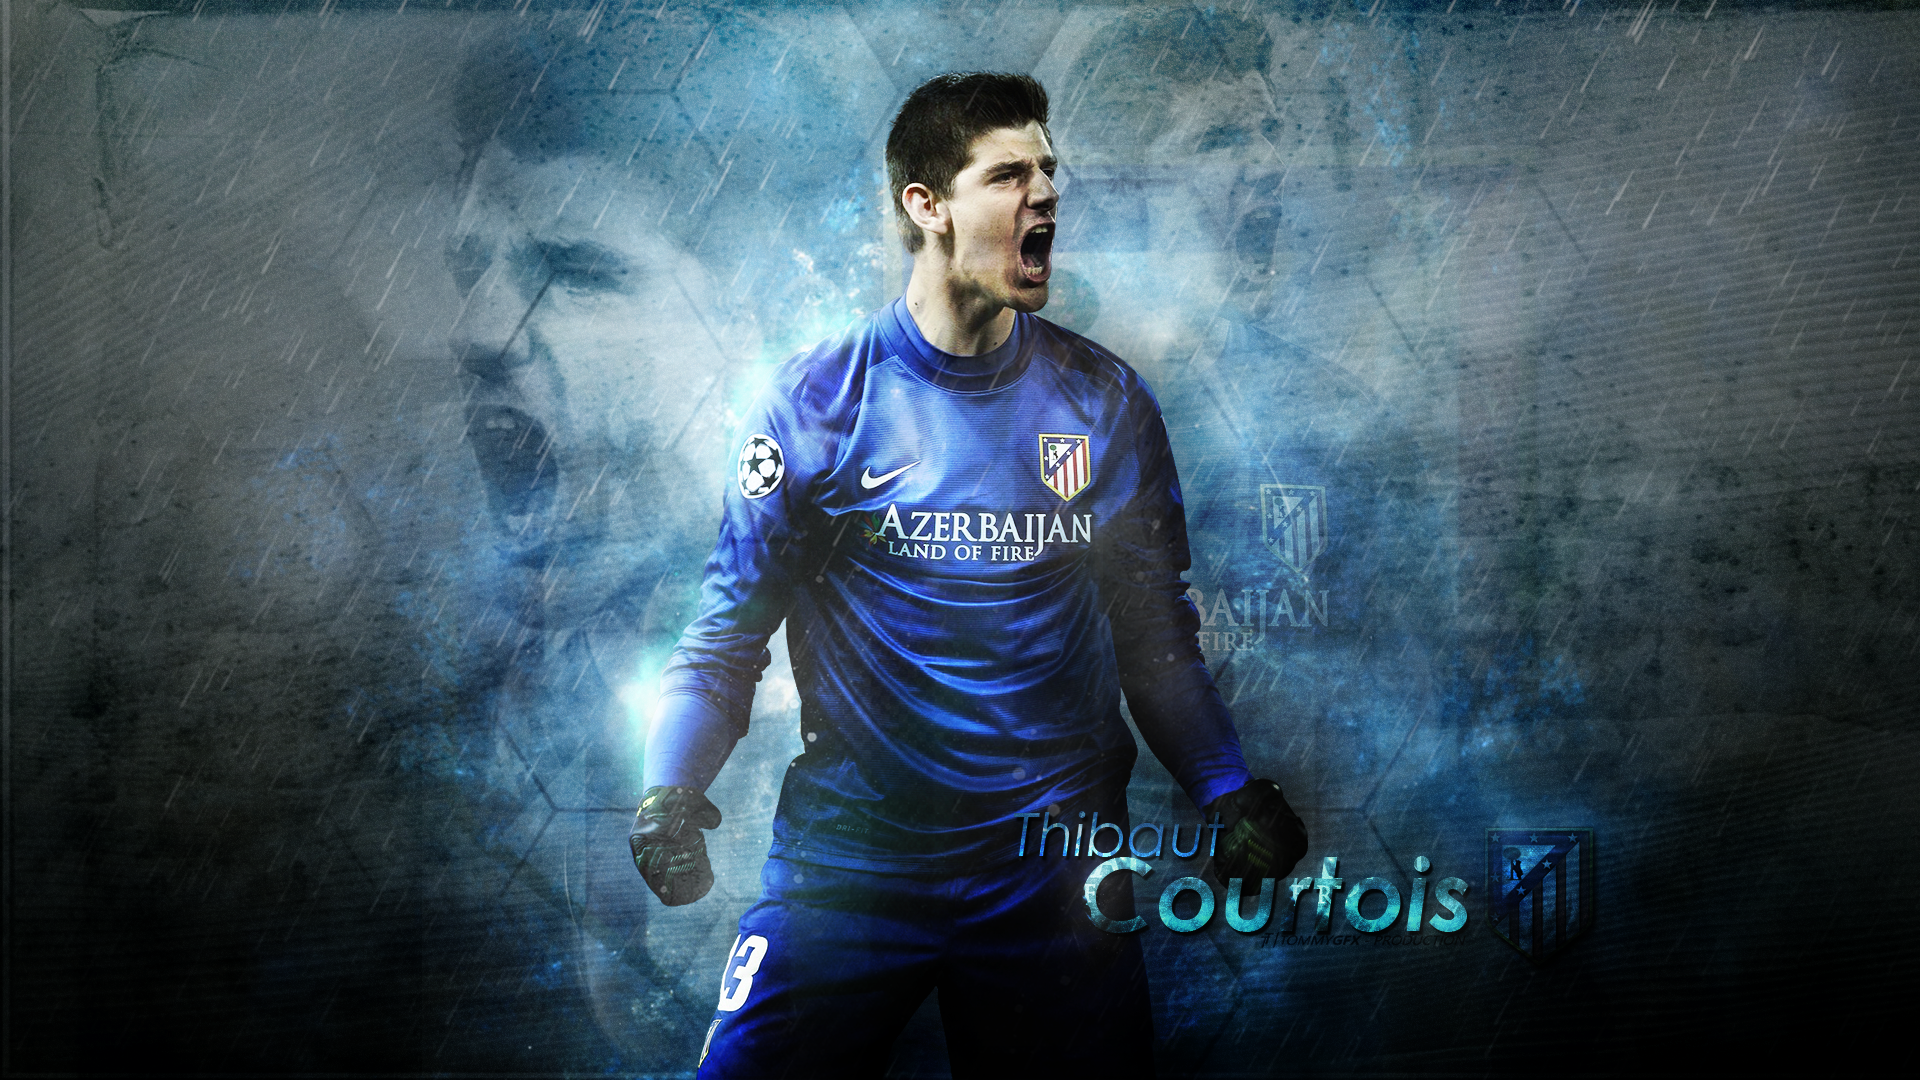 Thibaut Chelsea Wallpaper Wallpapersafari